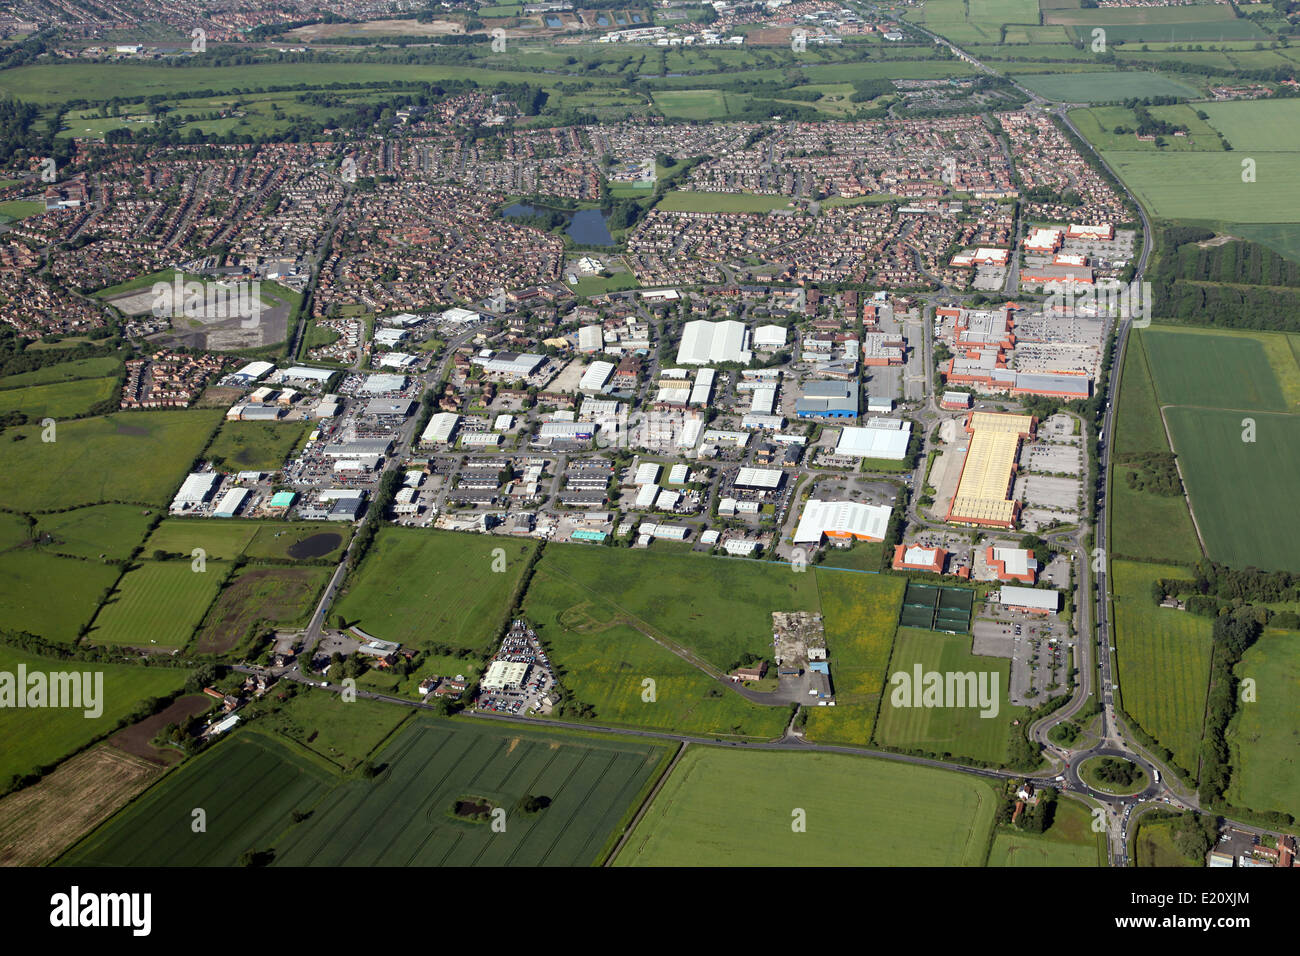 aerial view of the Clifton Moor area, north of York, UK - Stock Image